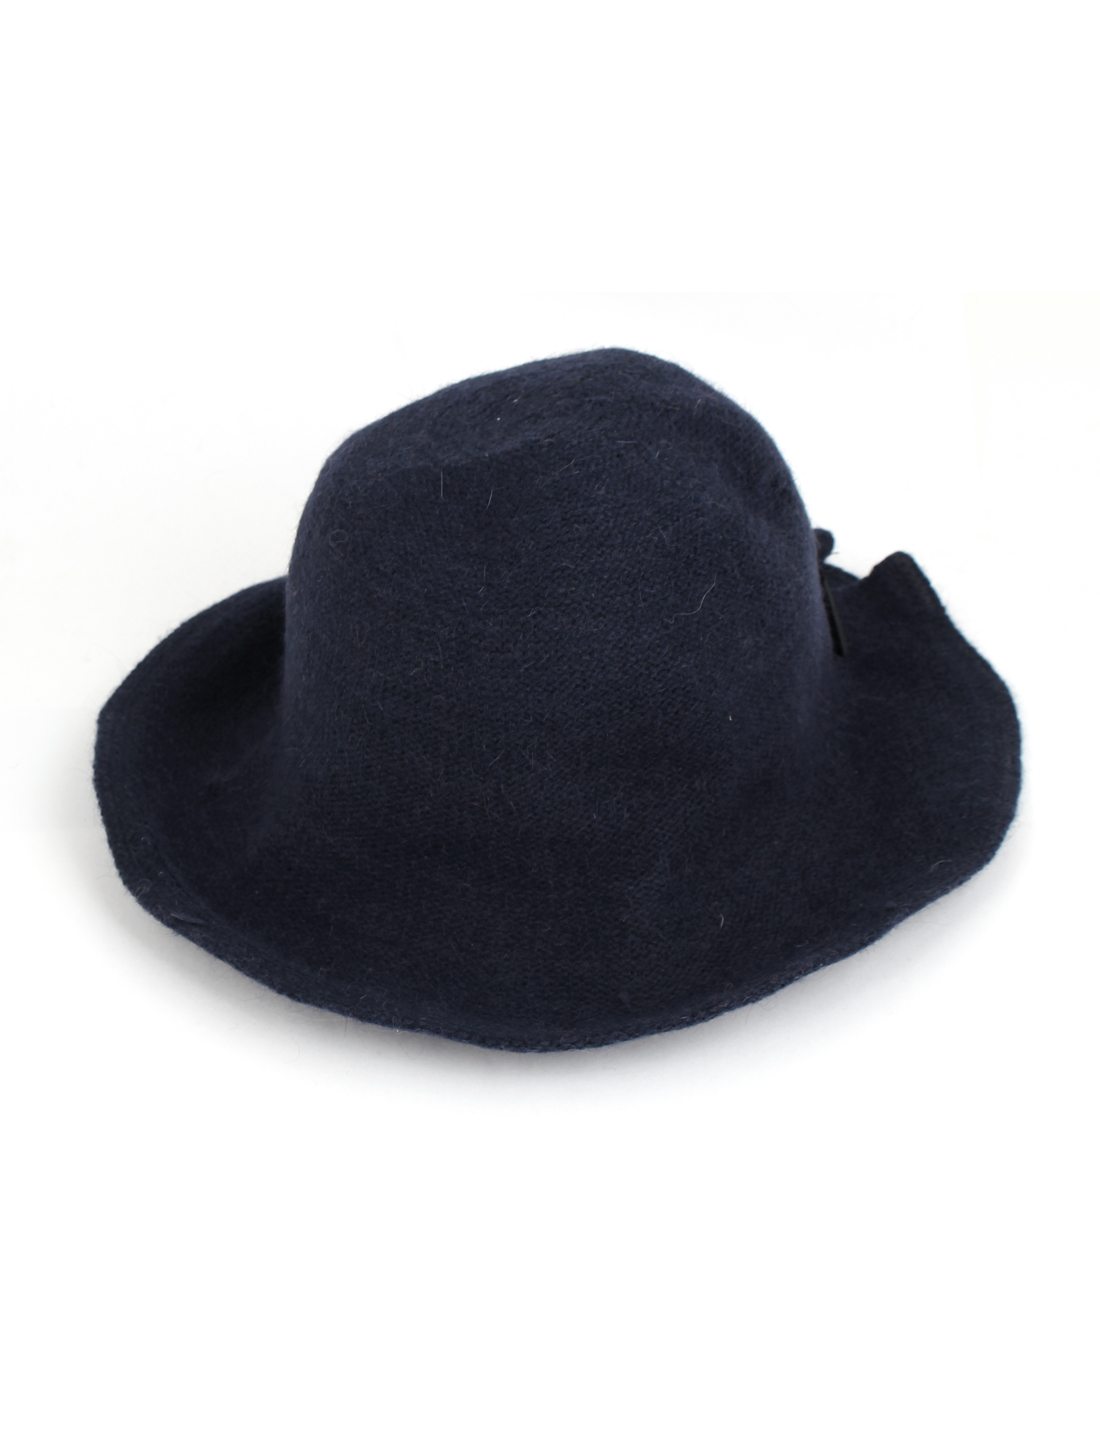 Lady Faux Fur Bowknot Decor Party Winter Bowler Cloche Bucket Hat Cap Dark Blue